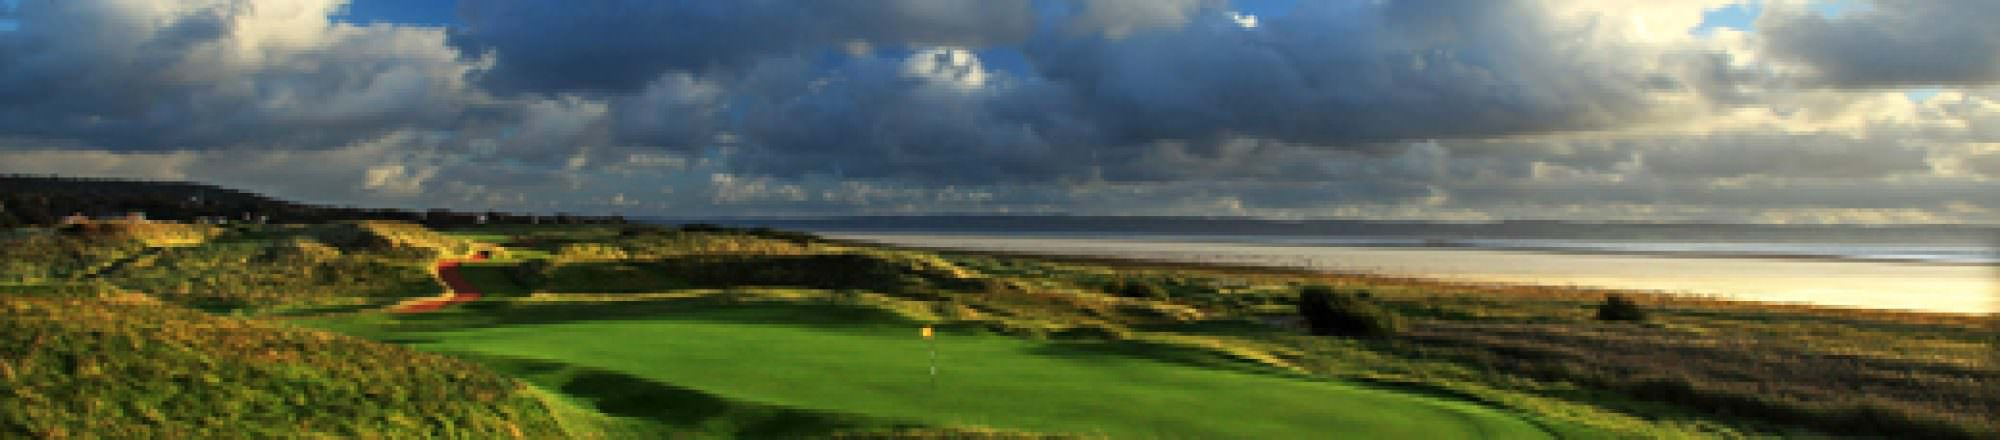 Top 100 links golf courses in GB&I: 29 - Royal Liverpool